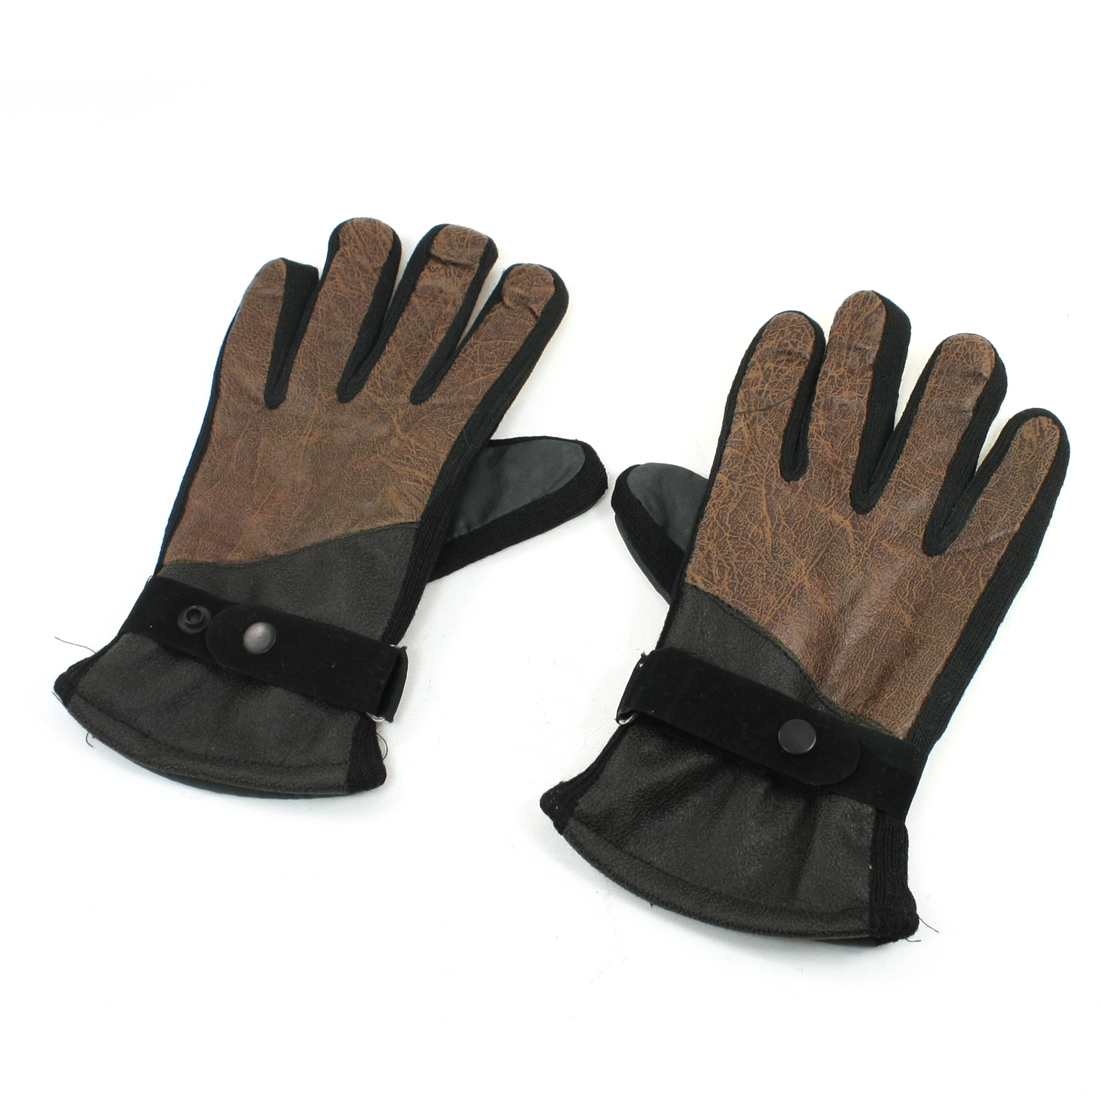 Man Woman Pair Brown Green Full Finger Thick Winter Warm Gloves M Size